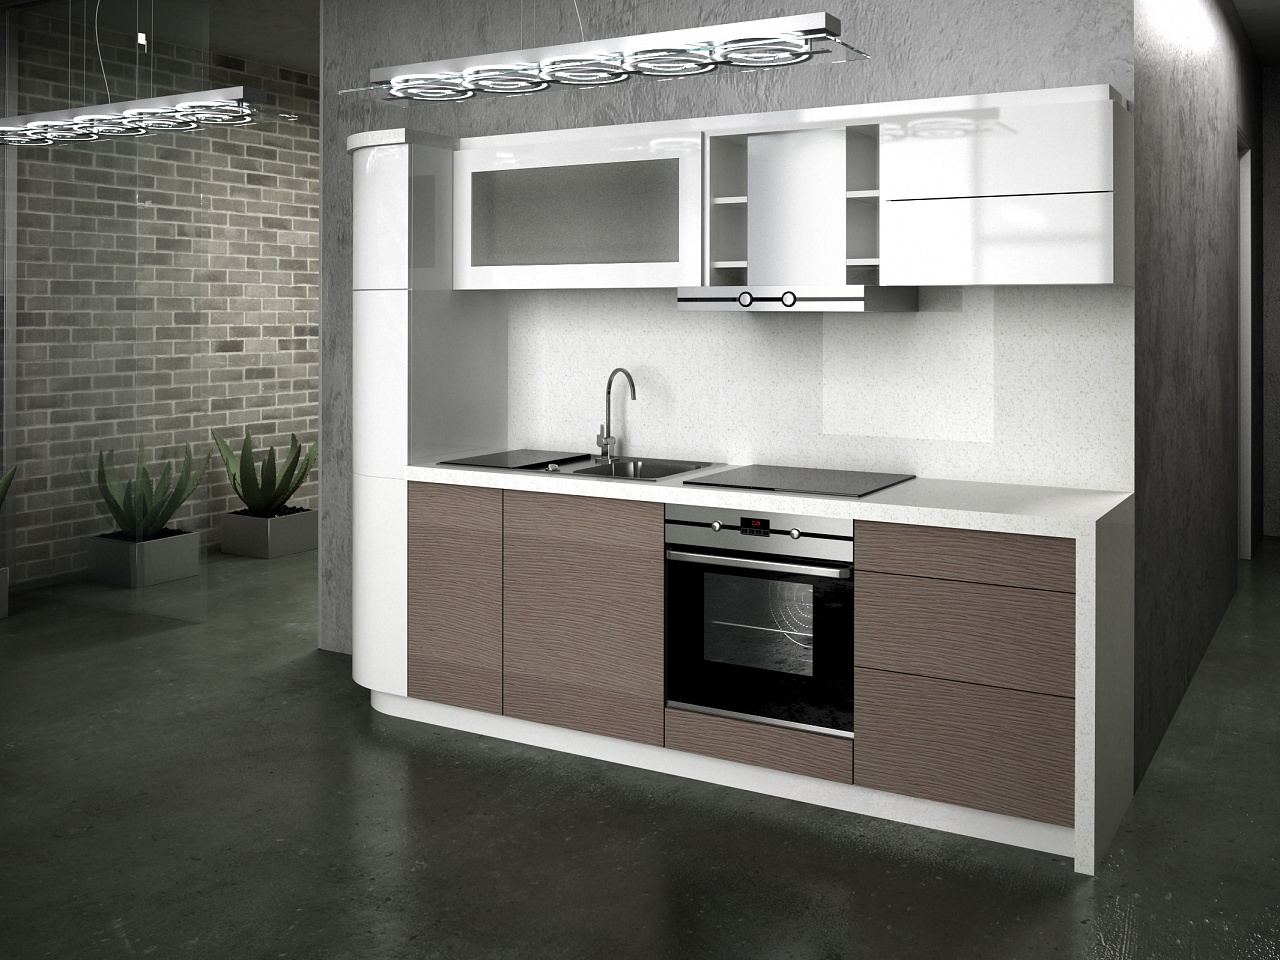 Minimalist-Kitchen-Set-Design-concept